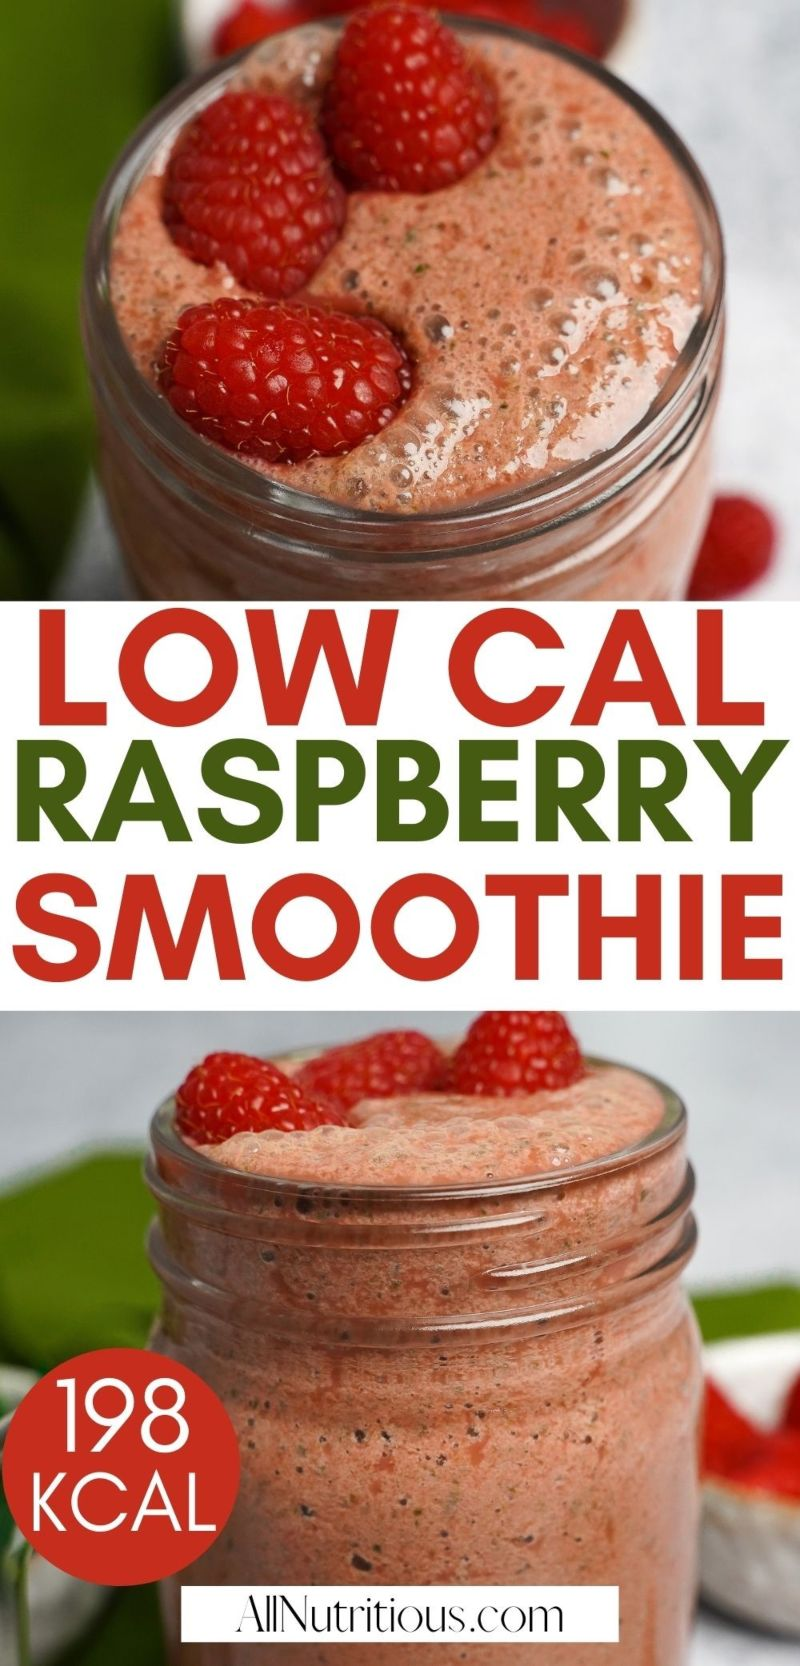 low cal raspberry smoothie